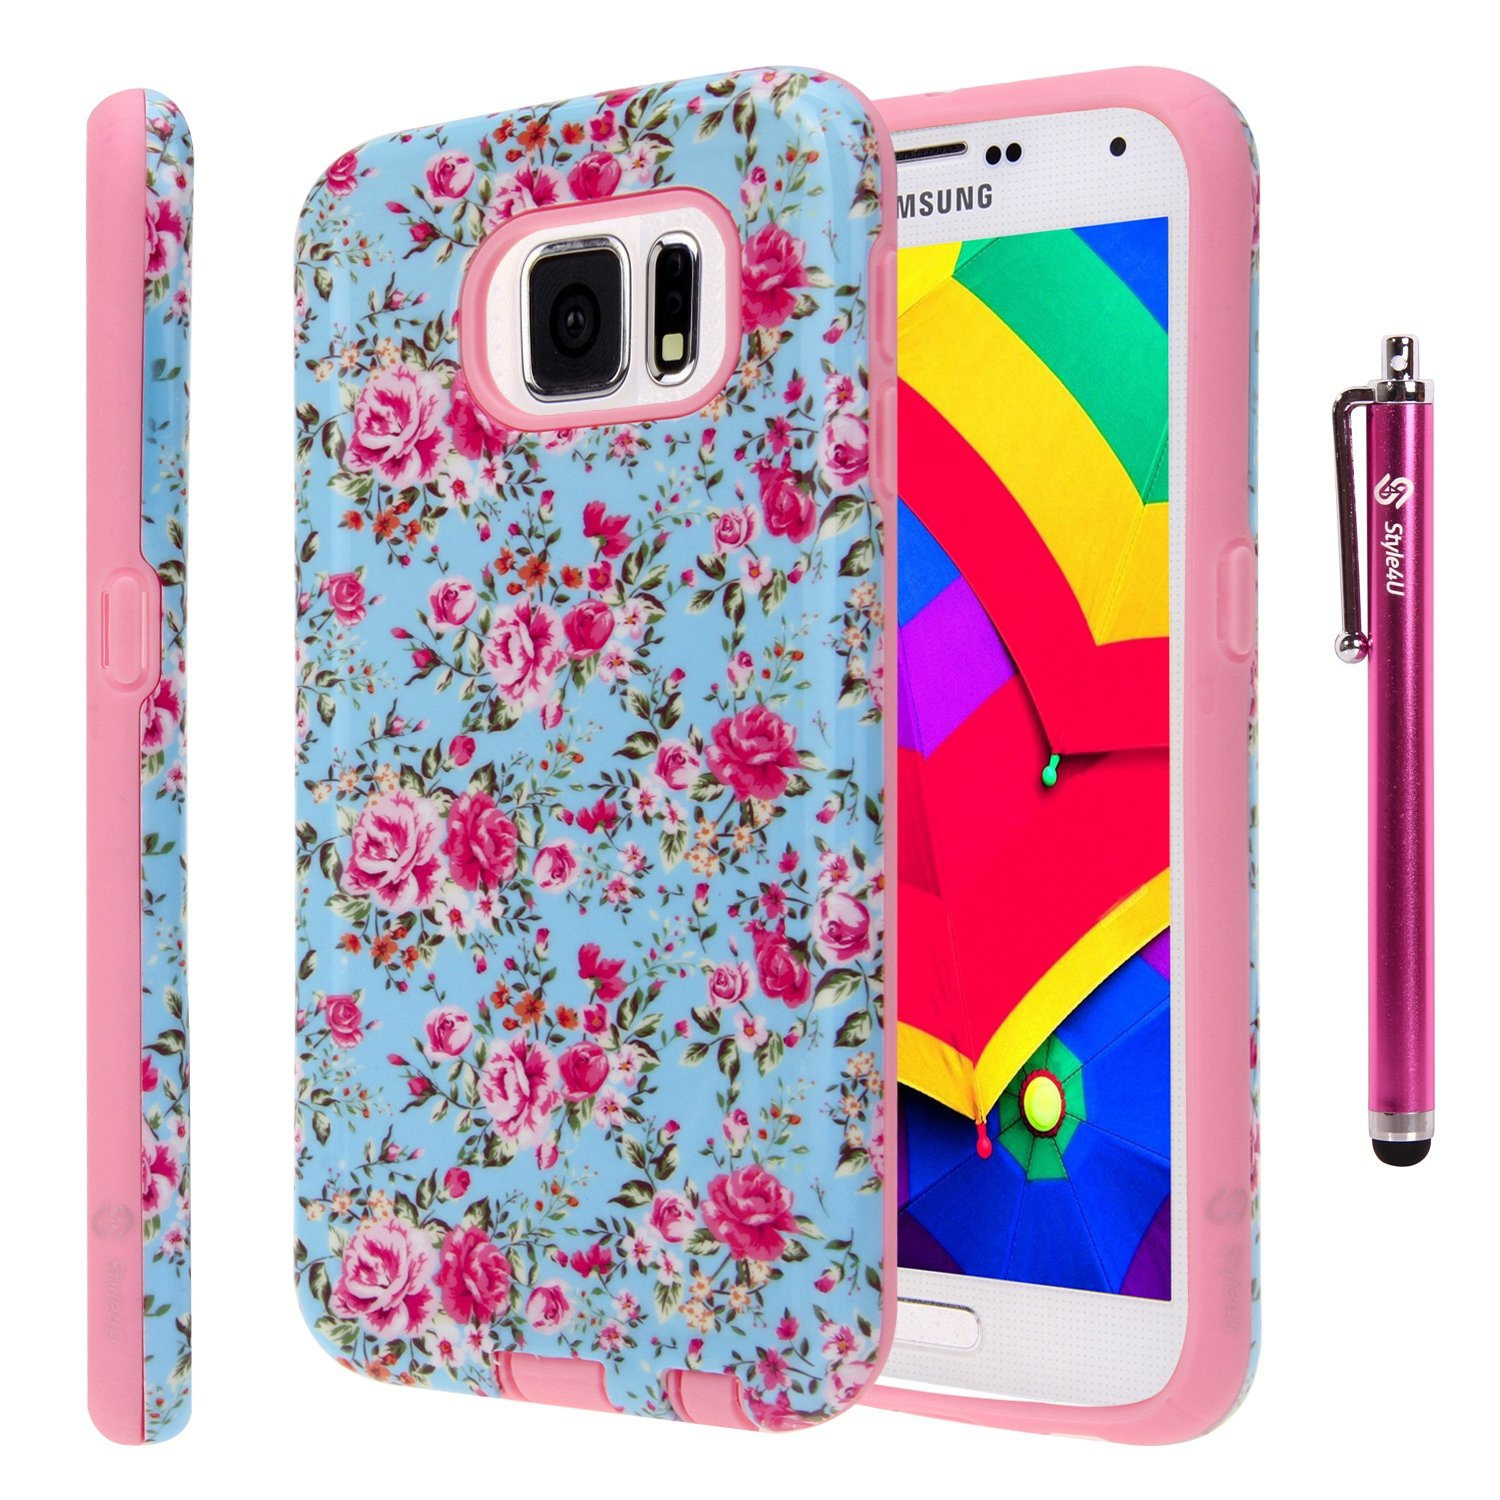 Style4U-Patterned-Design-Hybrid-Armor-Samsung-Galaxy-S6-Phone-Case-with-Stylus